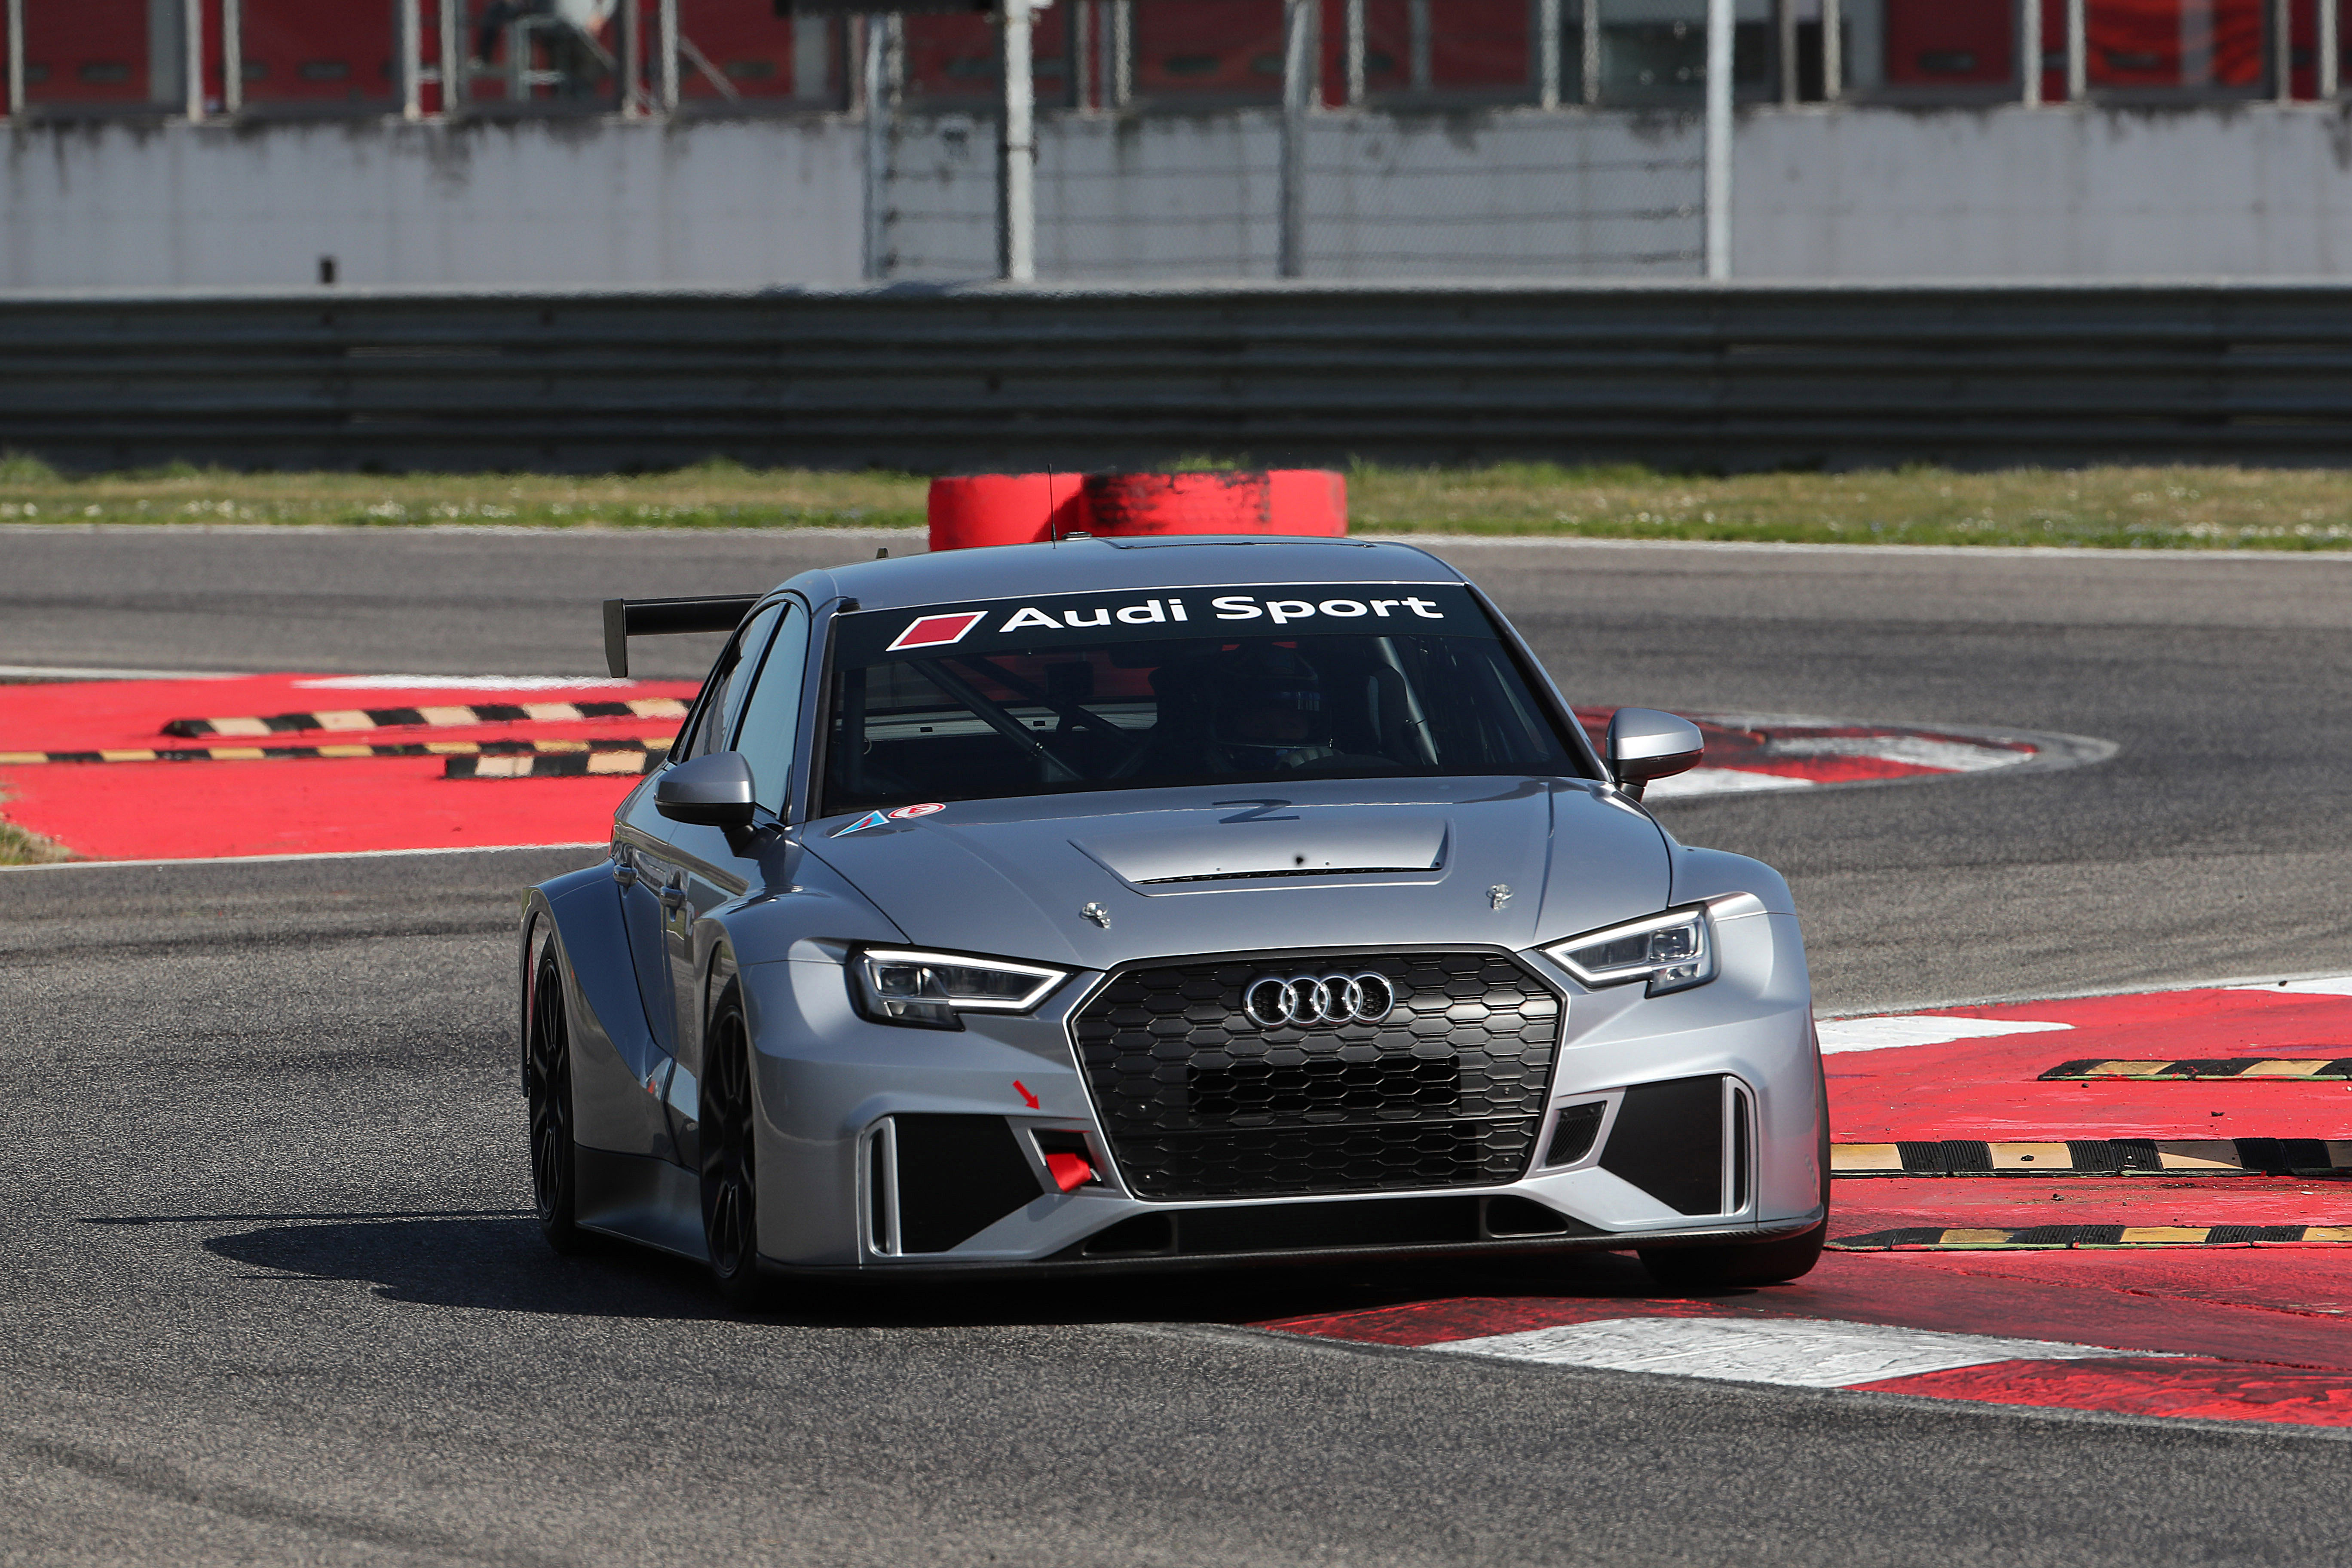 Balance of Performance: the Audi is the heaviest car